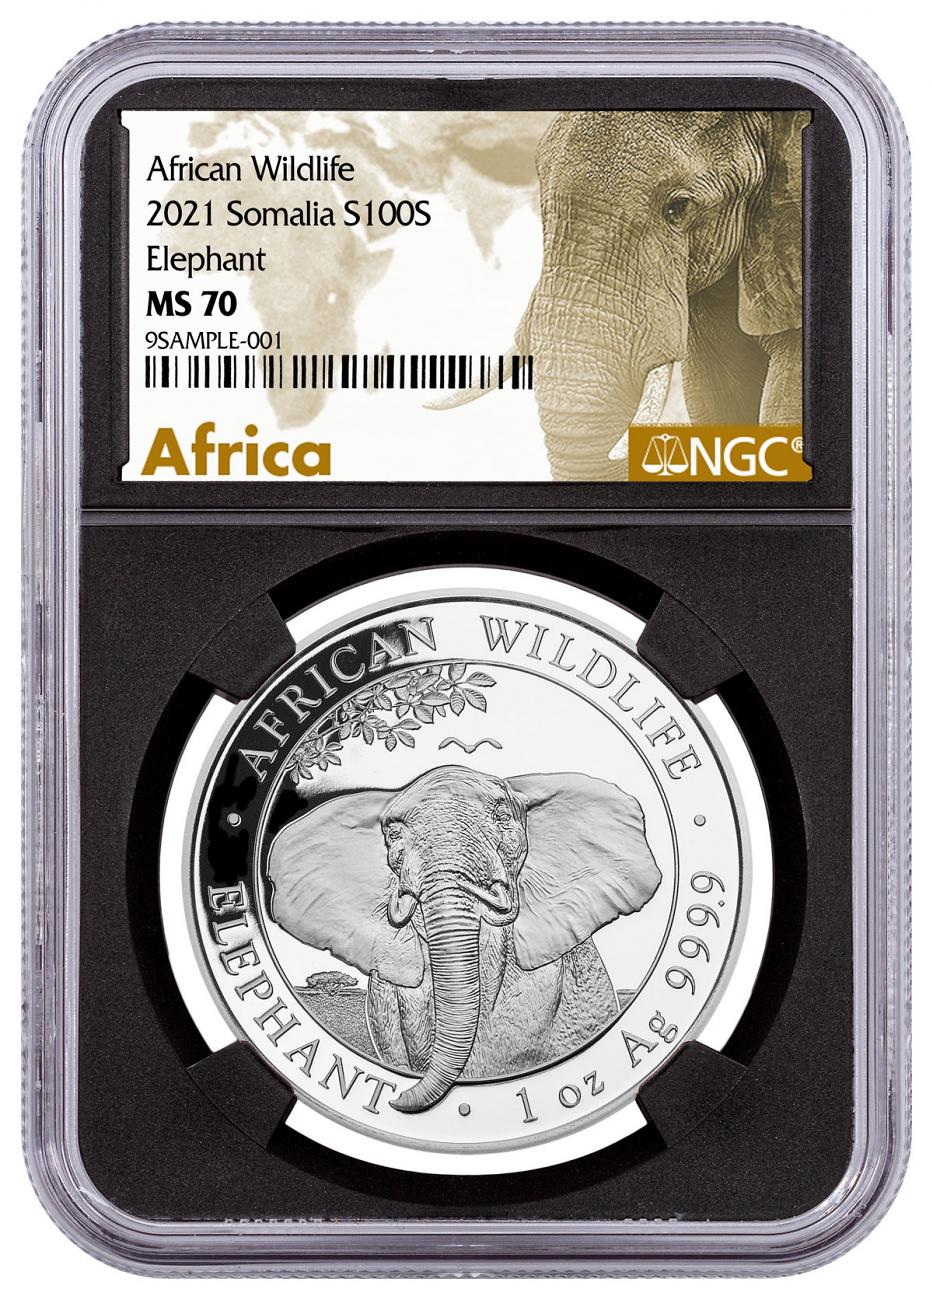 2021 Somalia 1 oz Silver Elephant Sh100 Coin NGC MS70 Black Core Holder Exclusive African Elephant Label